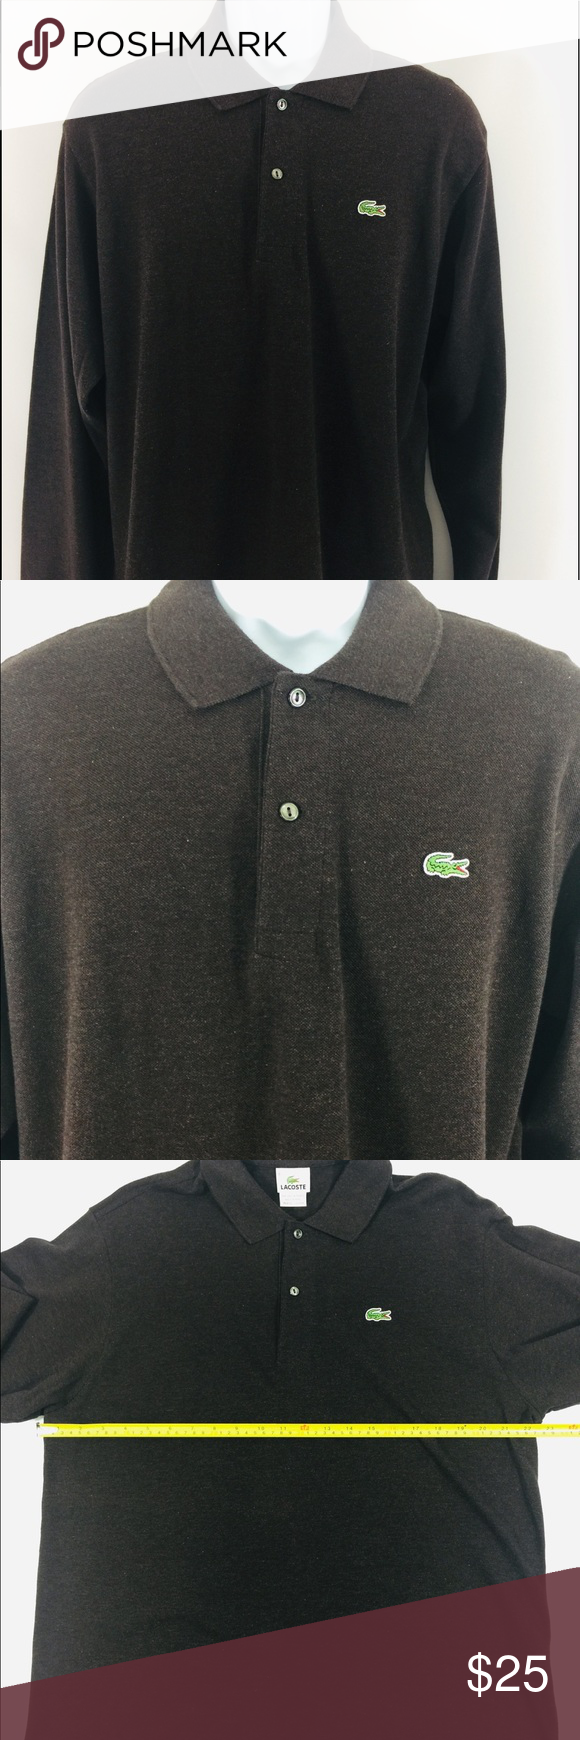 3370afe6 Lacoste Polo Brown Sz 6 Mens Large Lacoste Shirt Mens size 6 Large Brown  Long Sleeved Very Good Condition D Lacoste Shirts Polos